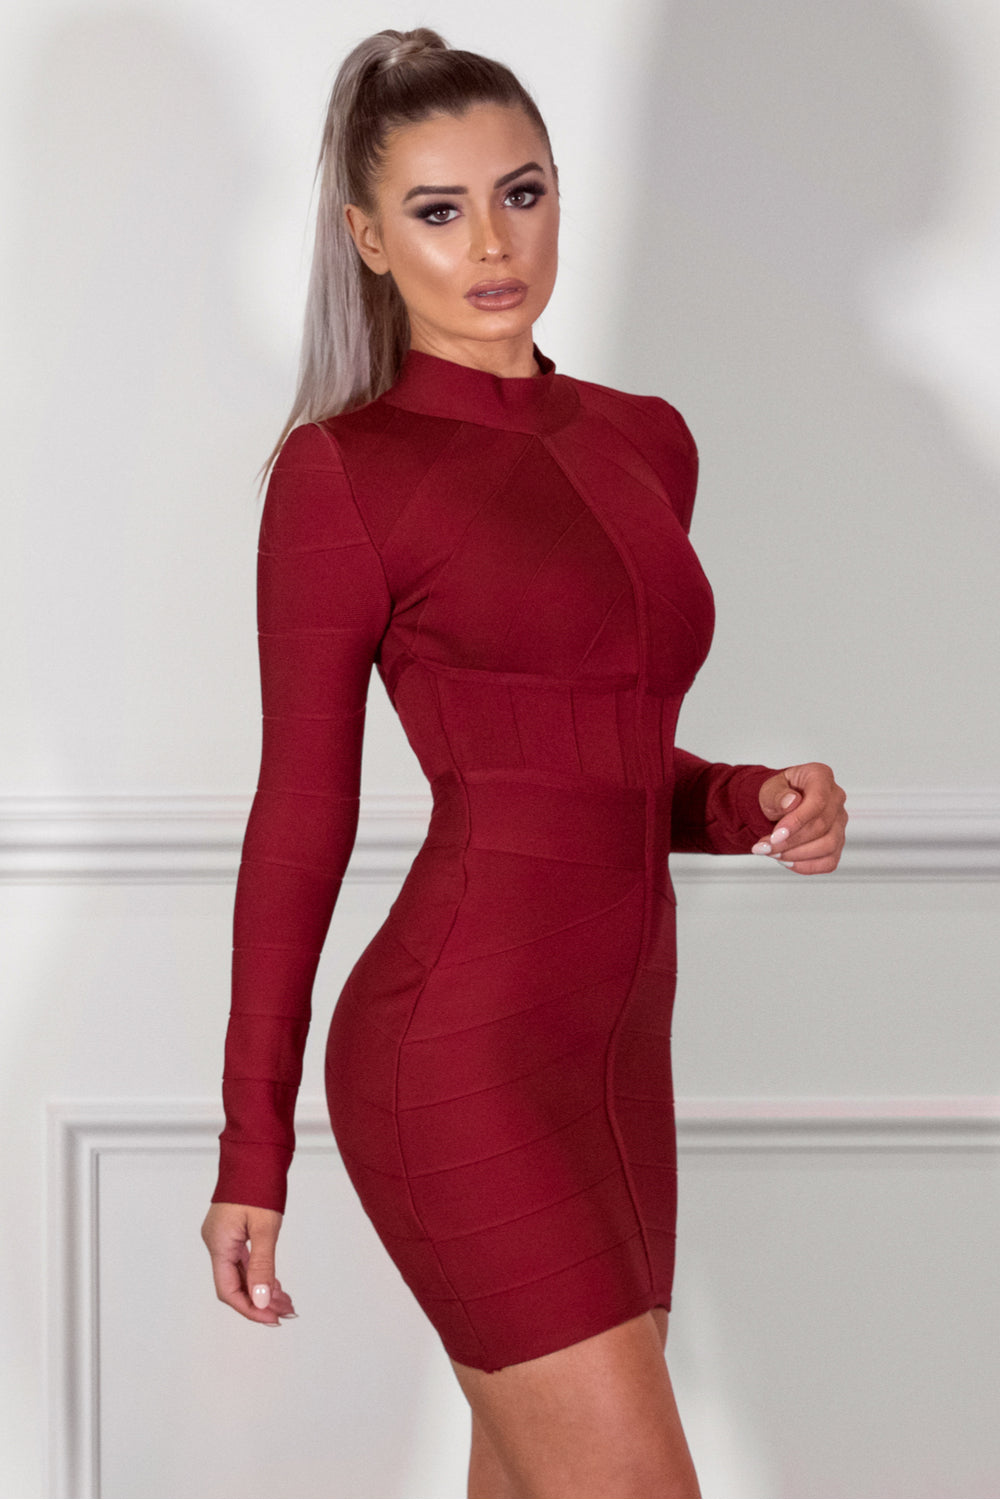 SASHA - BURGUNDY Dress